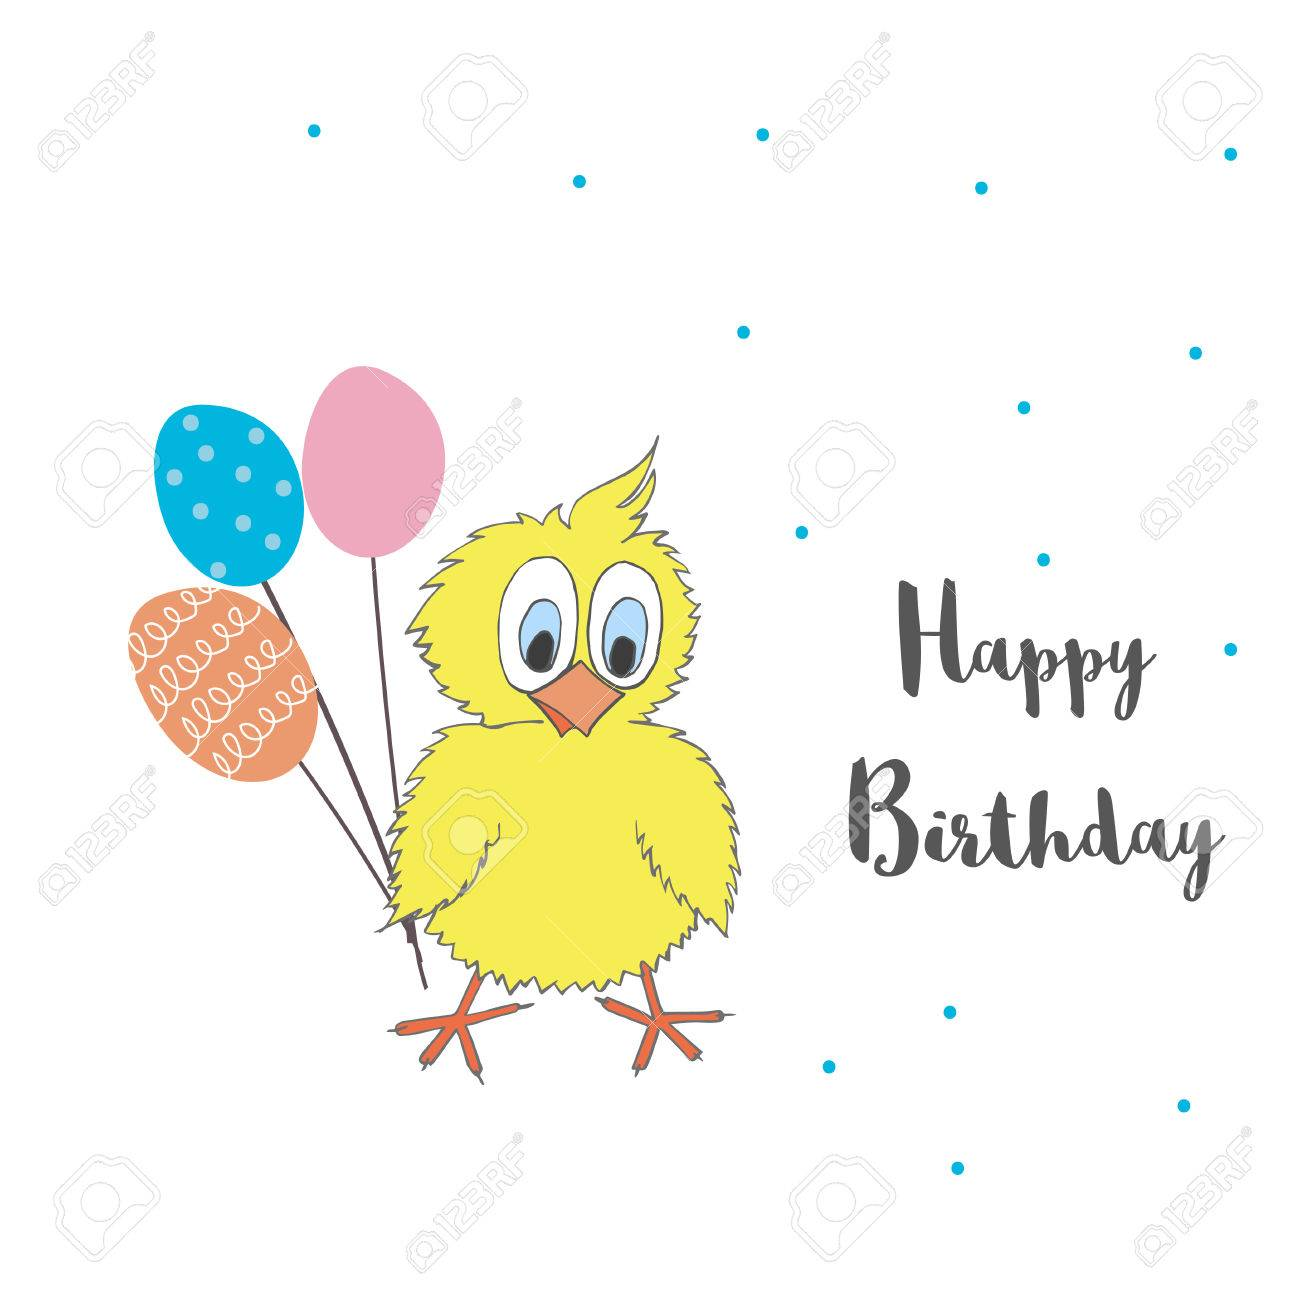 happy birthday chicken images ; 85714532-cute-little-chicken-with-balloons-and-words-happy-birthday-vector-cartoon-illustration-can-be-used-f